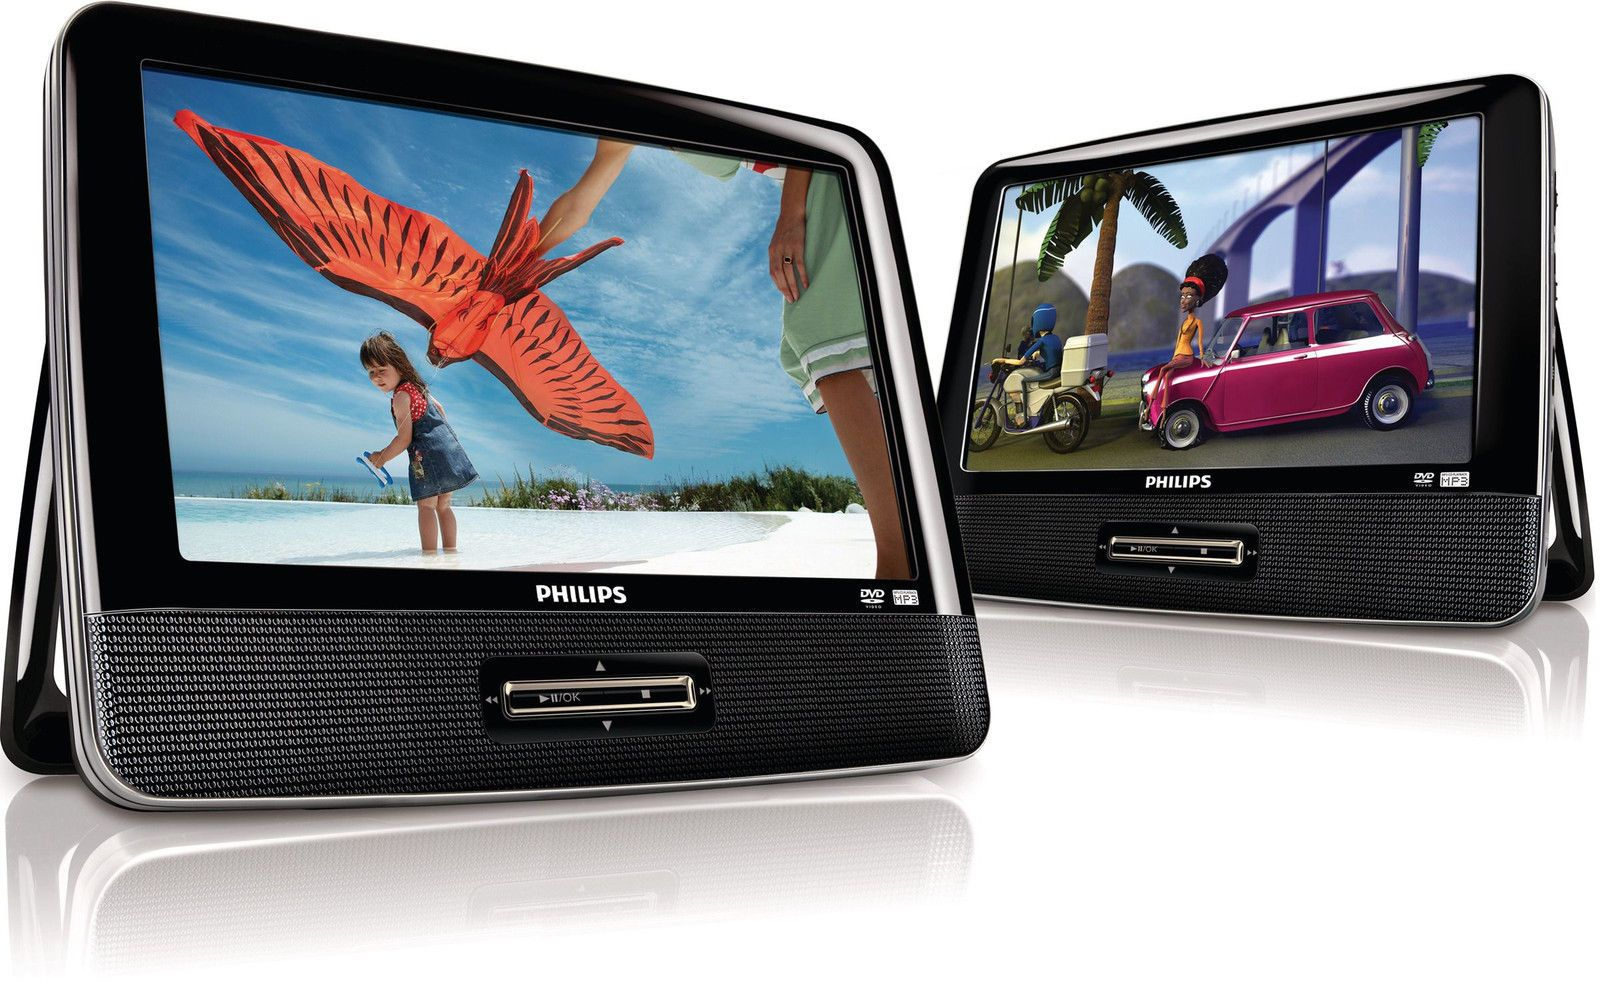 Philips Pd9016p 37 Lcd 9 Dual Portable Dvd Player Travel Home Snap Circuits Jr Sc 100 Electronics Discovery Kit New Factory Sealed Outlets